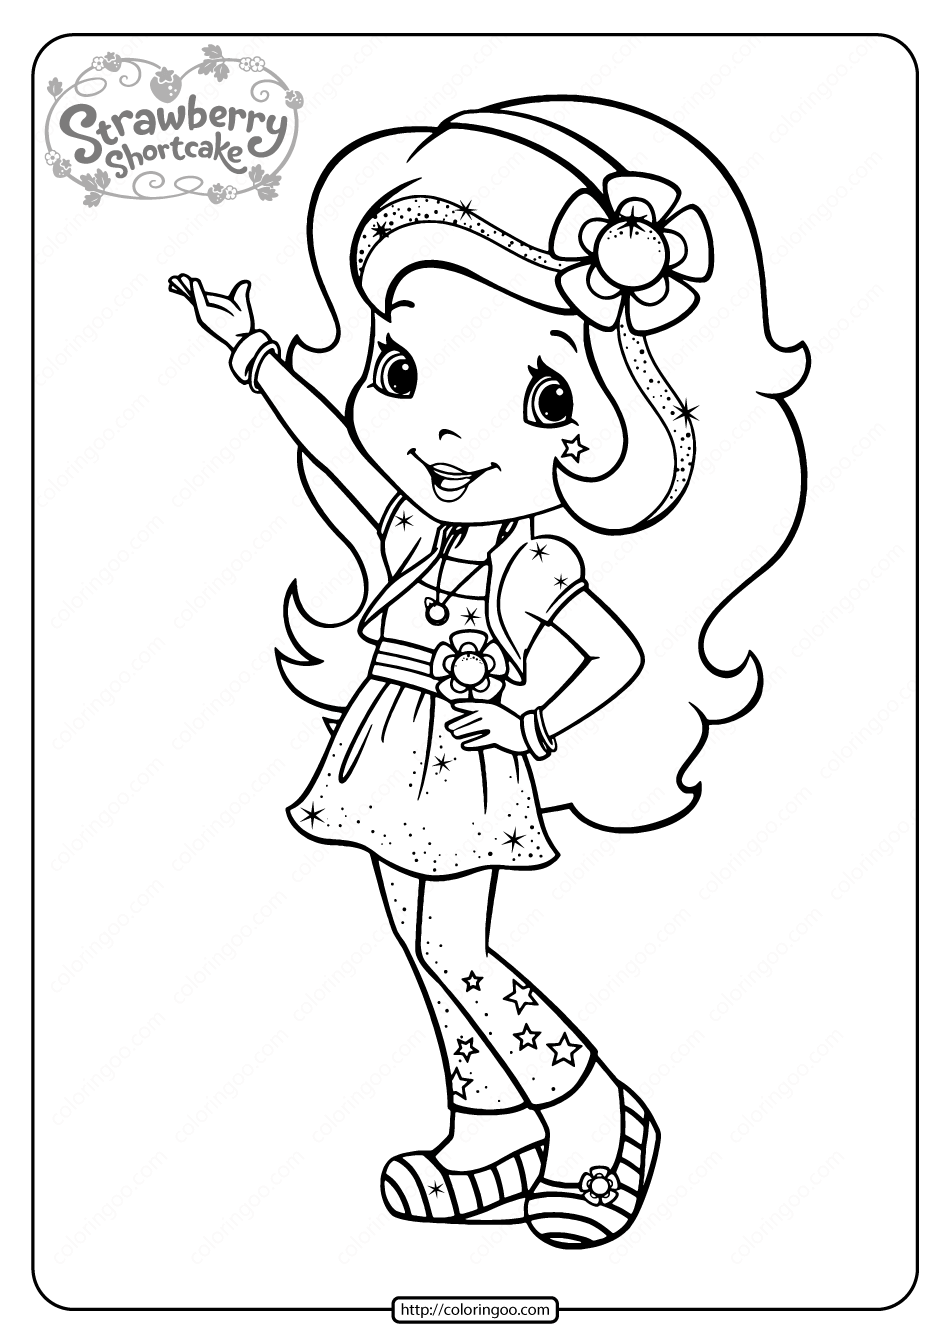 strawberry shortcake coloring games strawberry shortcake mermaid coloring page free games strawberry shortcake coloring